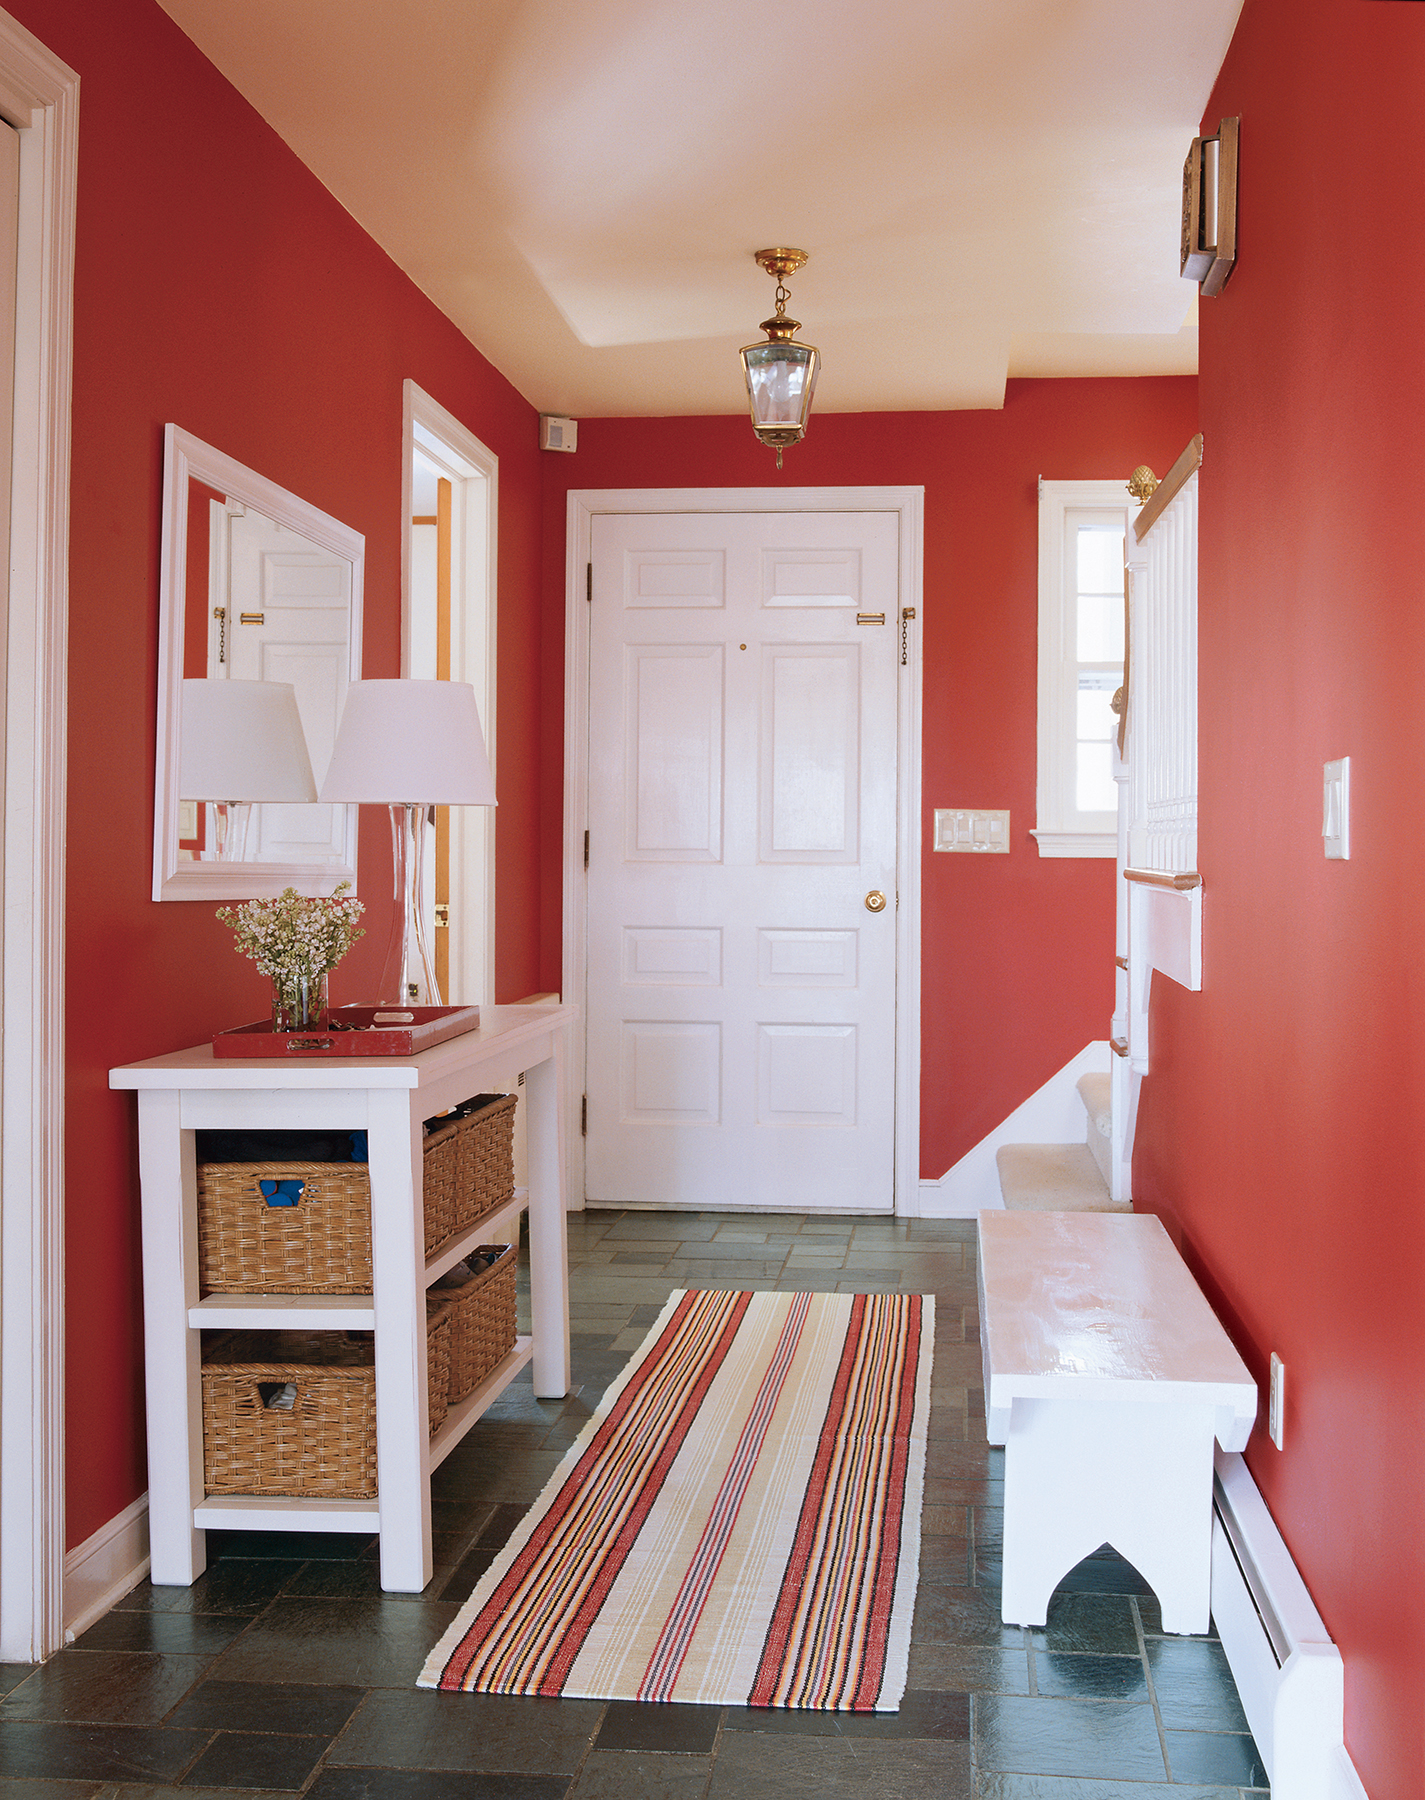 Define the space with a bold color like this red, which exudes a warm welcome.